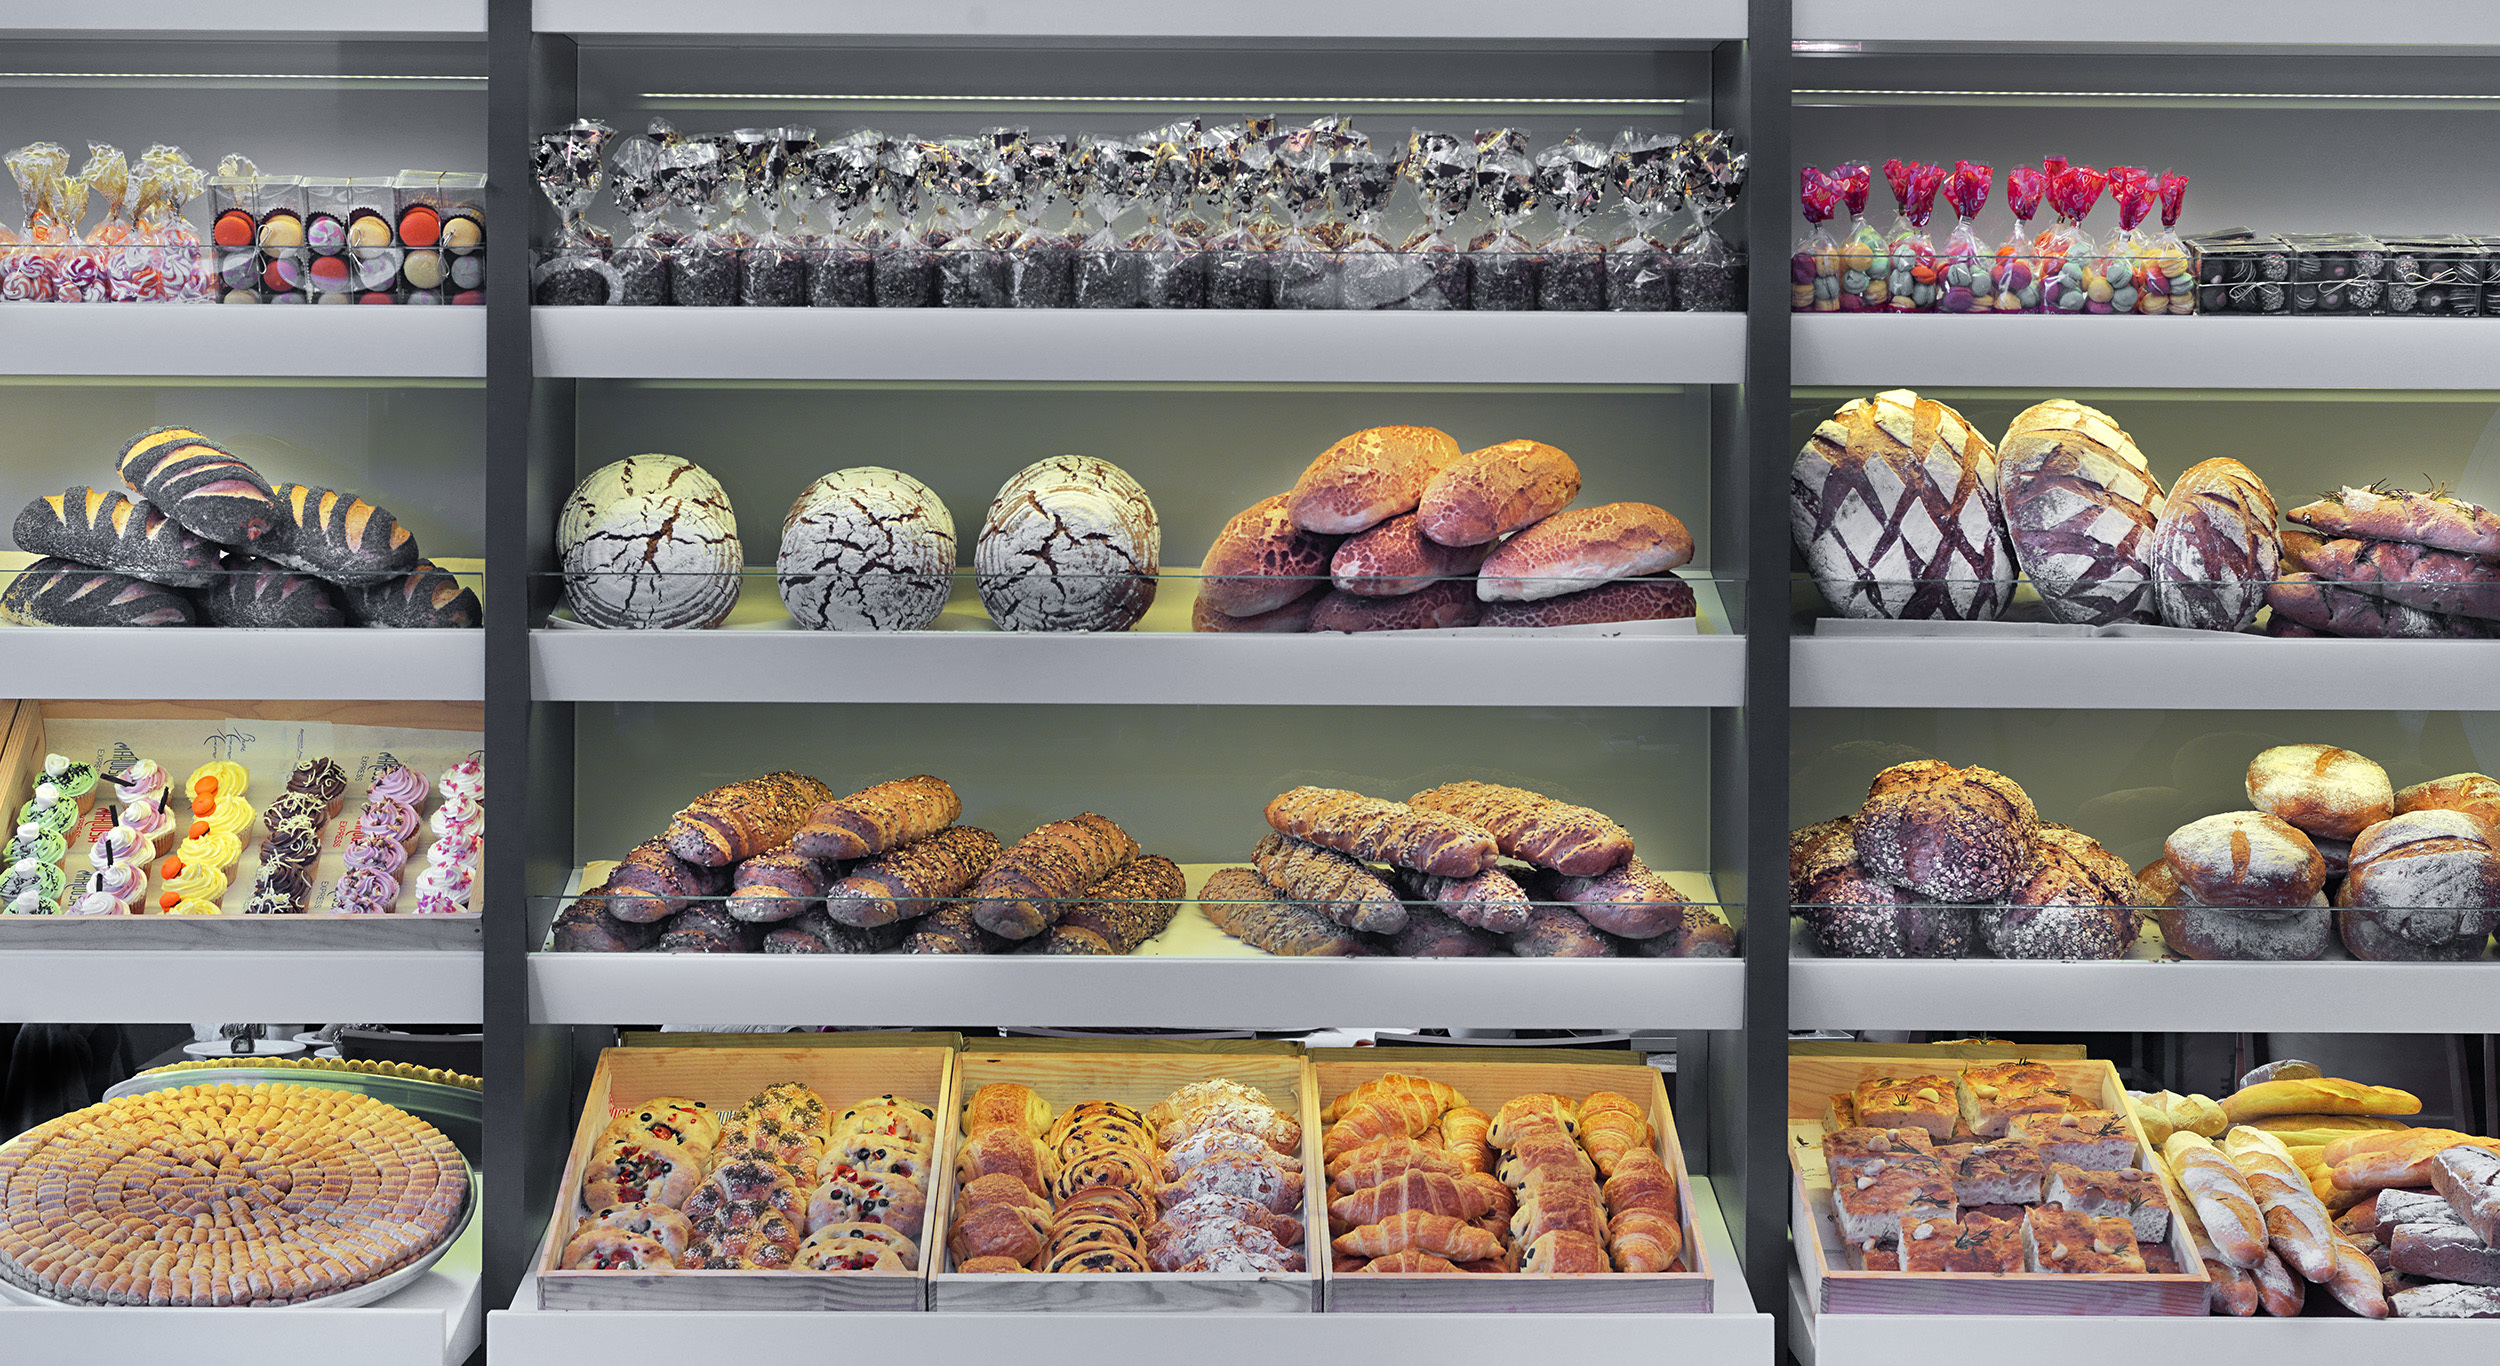 Picture of breads and pastries in a bakery display case